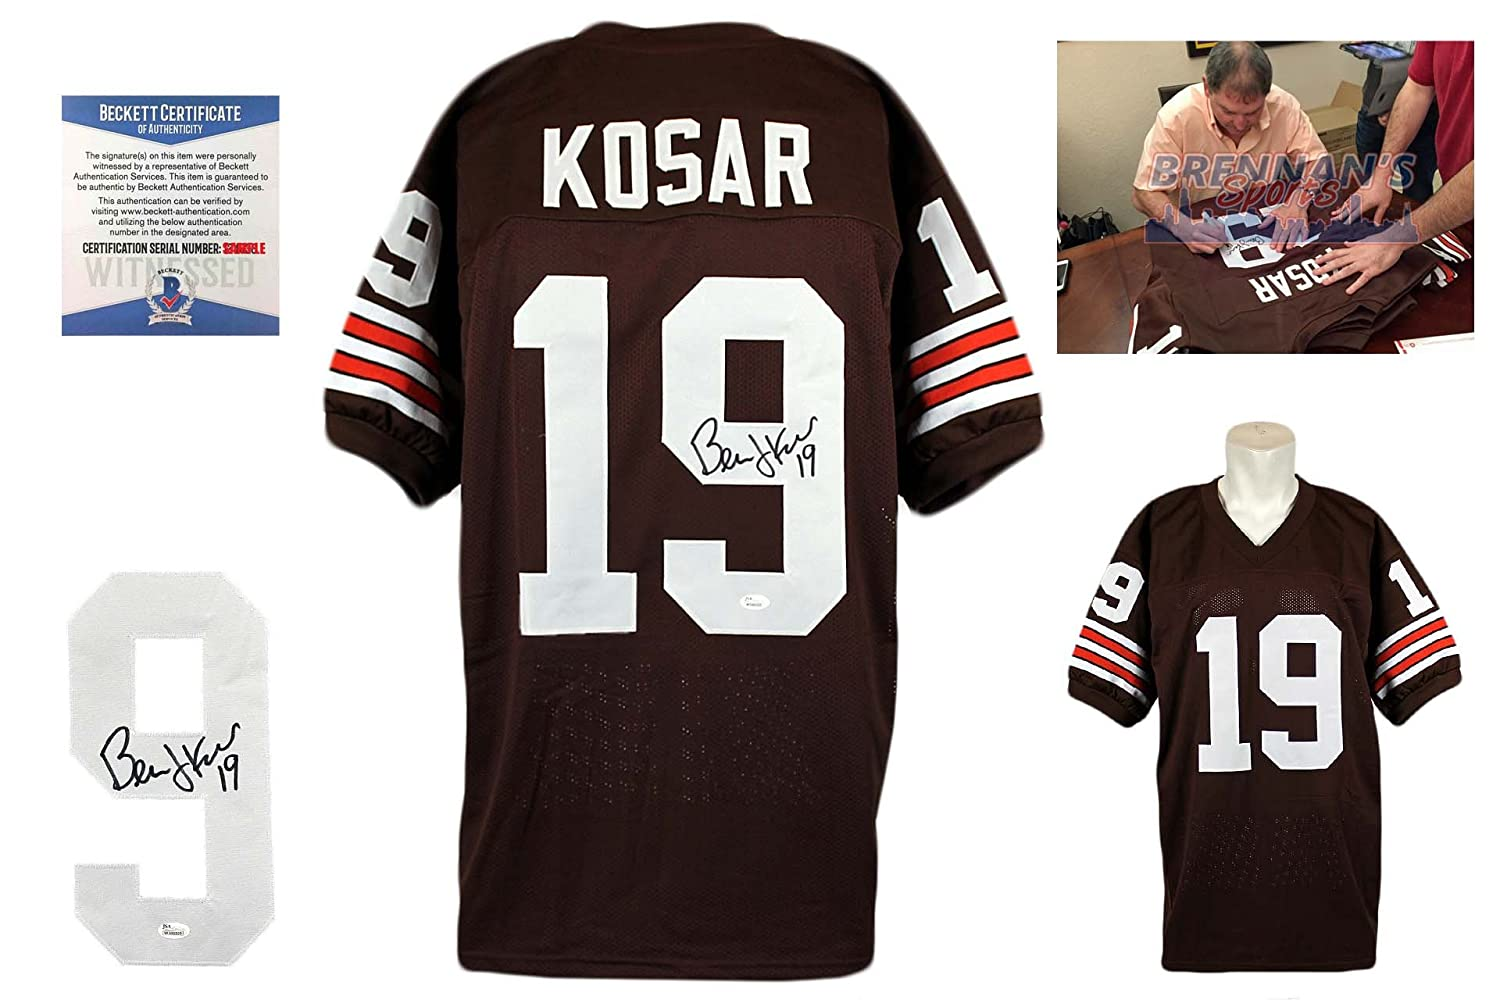 c7aa2b84e Amazon.com: Bernie Kosar Autographed SIGNED Jersey - Brown - Beckett:  Sports Collectibles